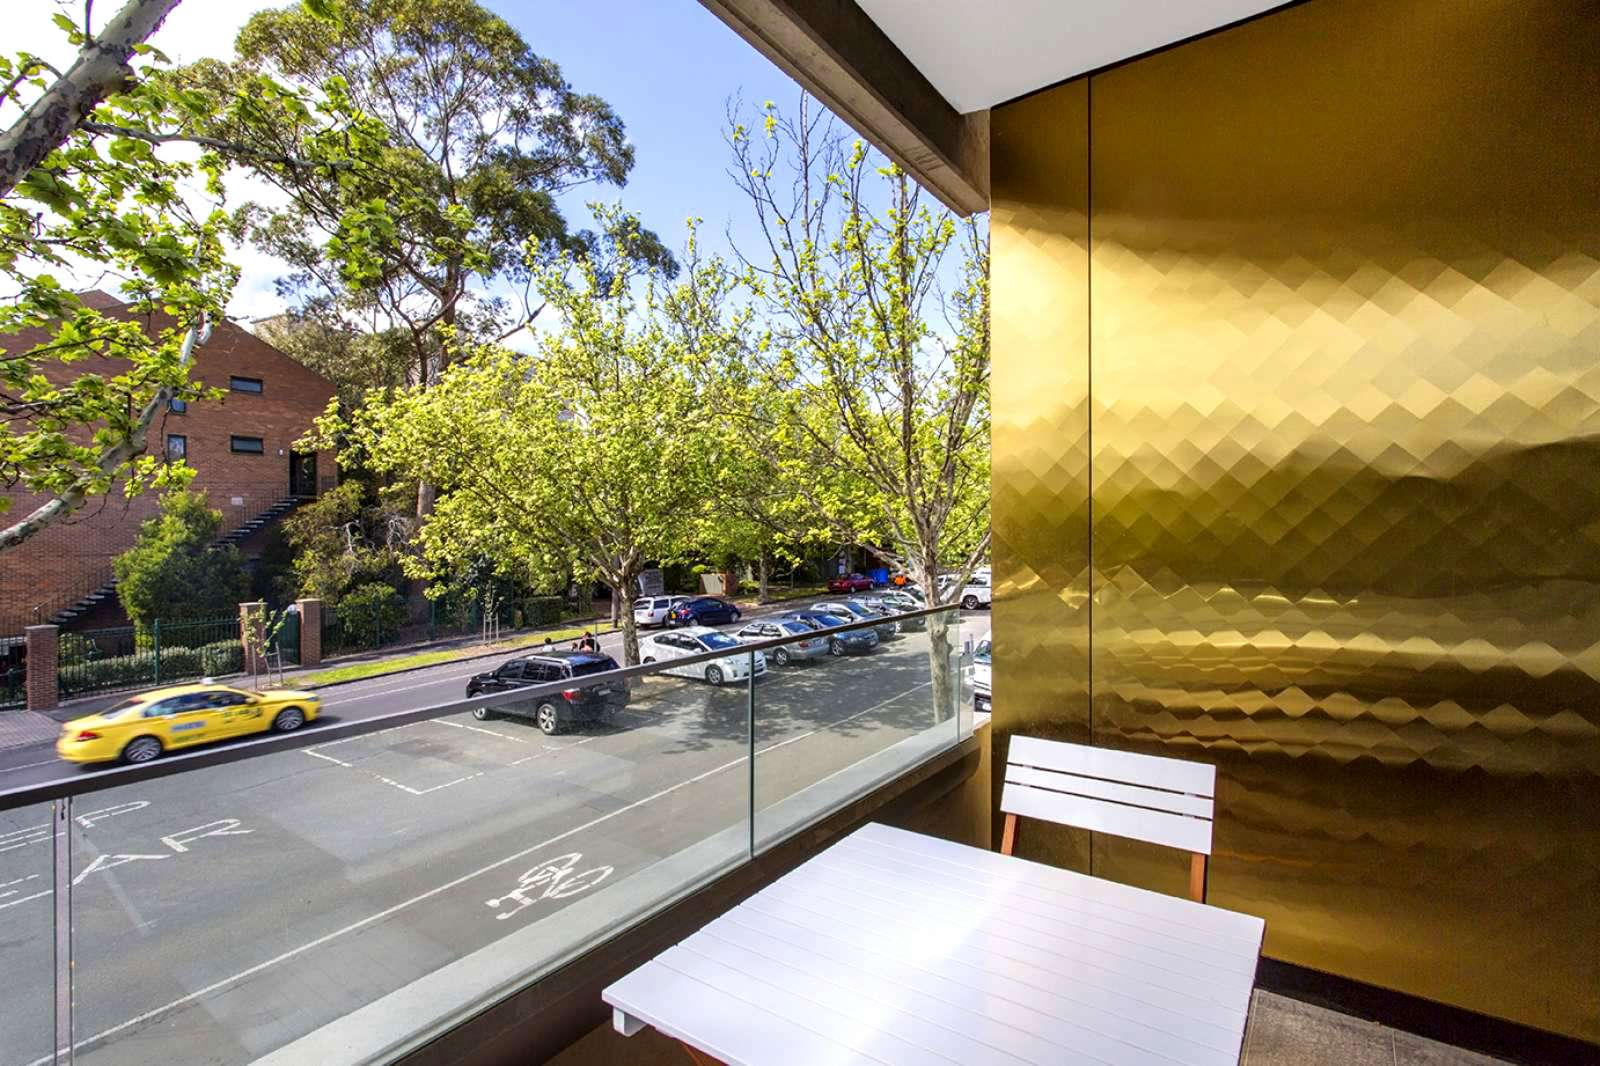 image for 104/475 Cardigan Street, Carlton, Melbourne